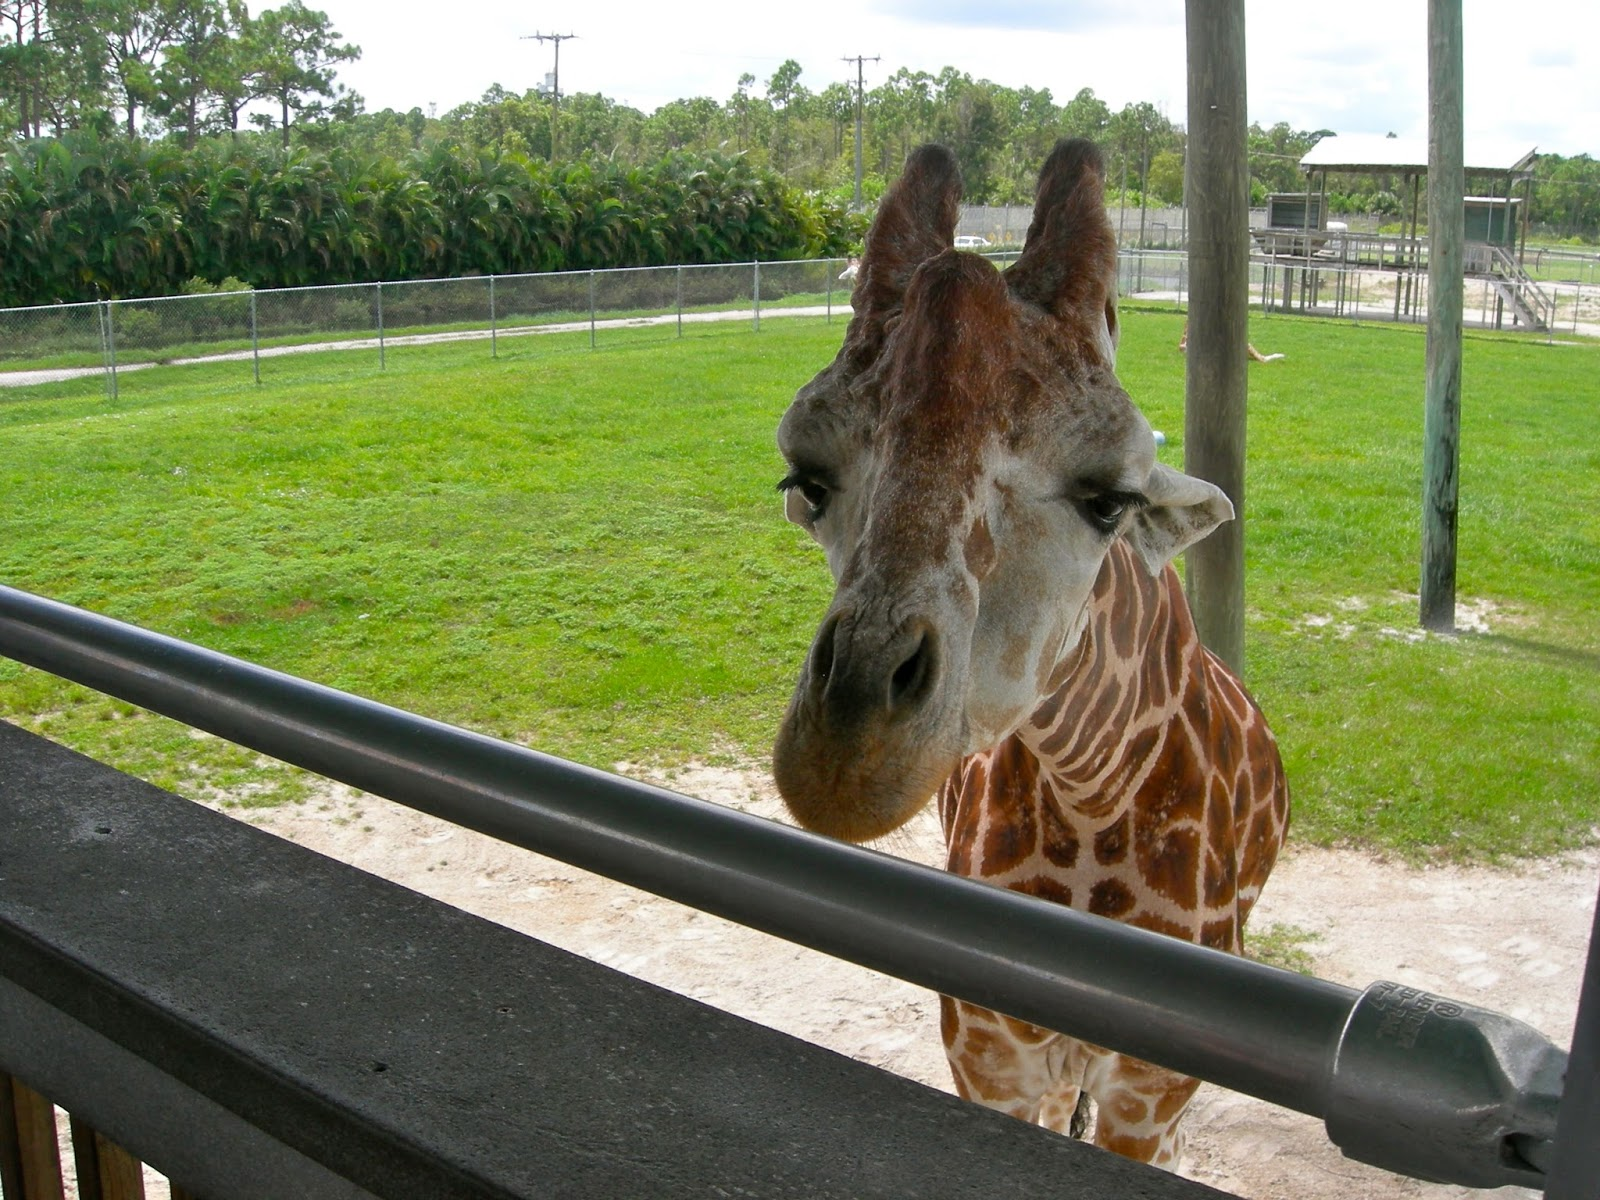 Giraffe at Lion Country Safari, Loxahatchee, FL - ouroutdoortravels.blogspot.com